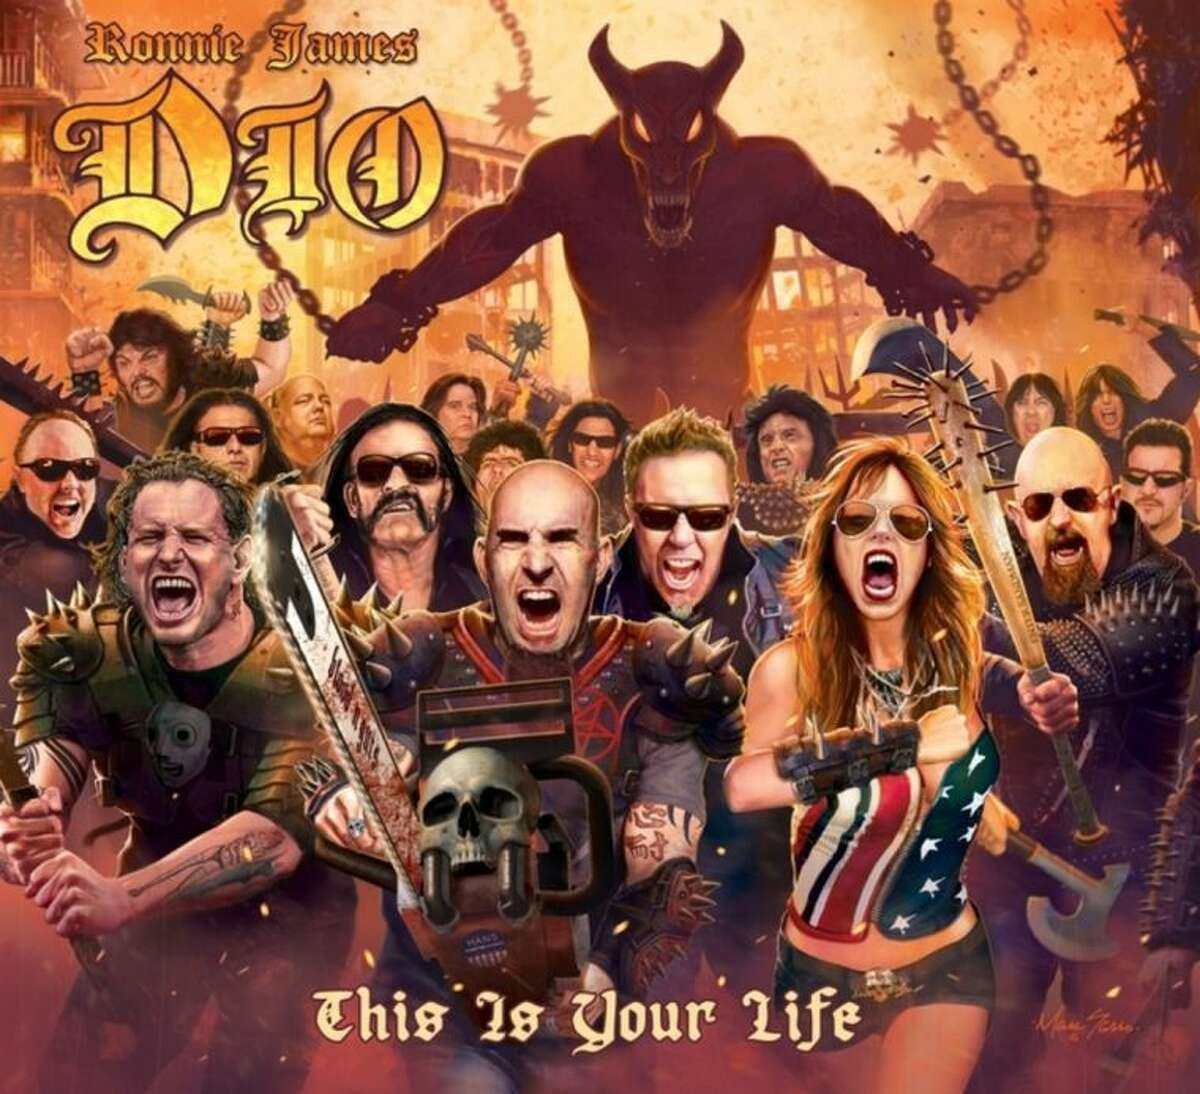 """This CD cover image released by Rhino Entertainment shows """"This Is Your Life,"""" by Ronnie James Dio . (AP Photo/Rhino Entertainment)"""